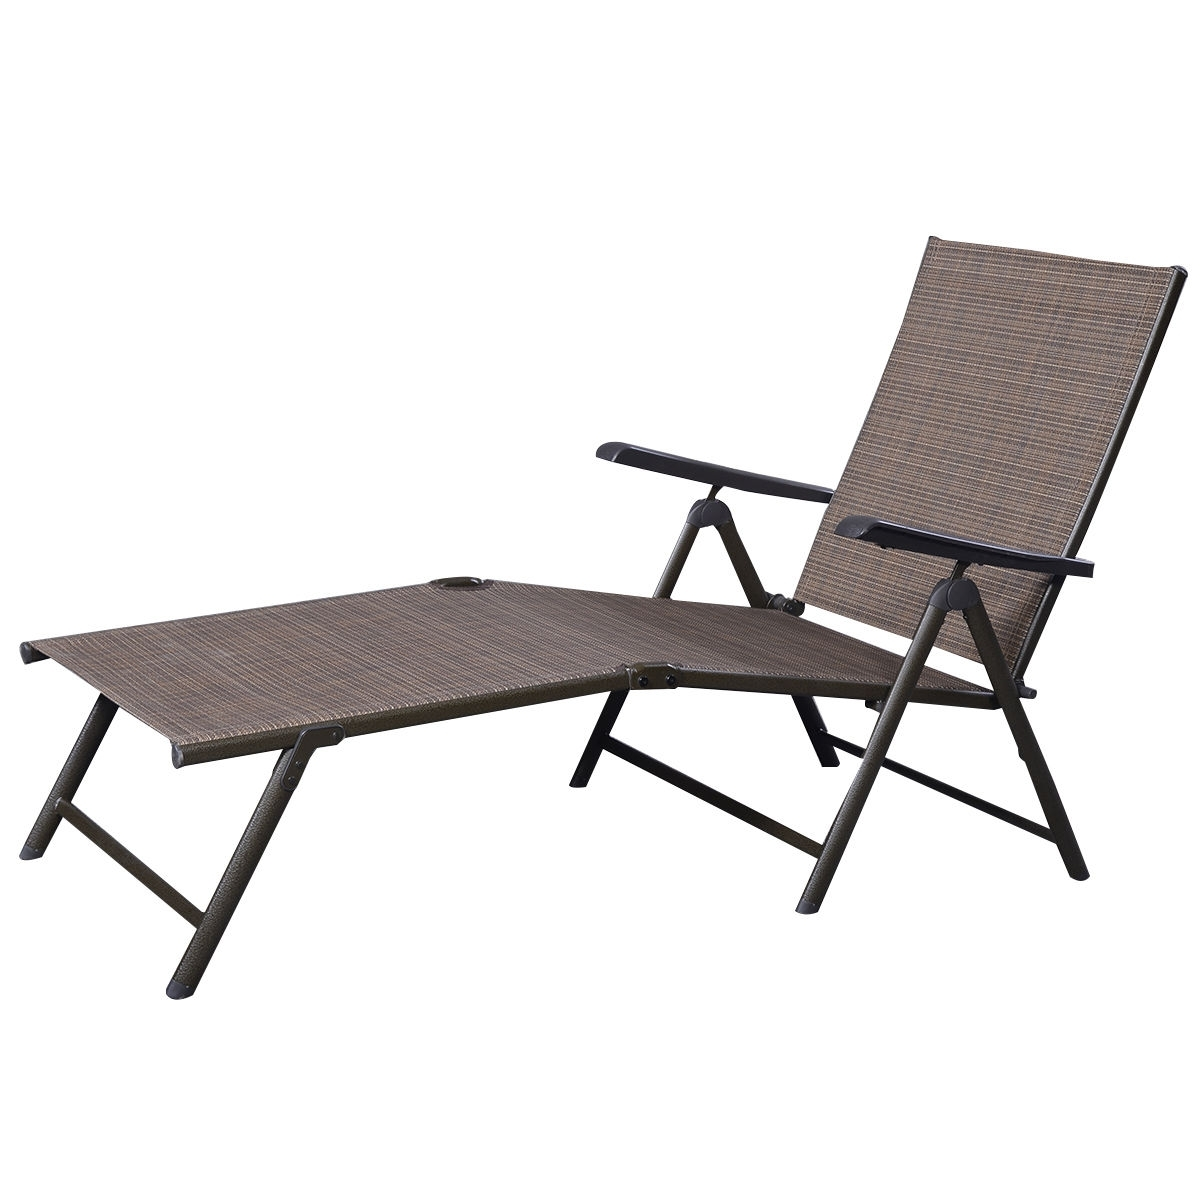 2017 Outdoor Adjustable Chaise Lounge Chair – Sunloungers – Outdoor For Adjustable Chaise Lounges (View 1 of 15)